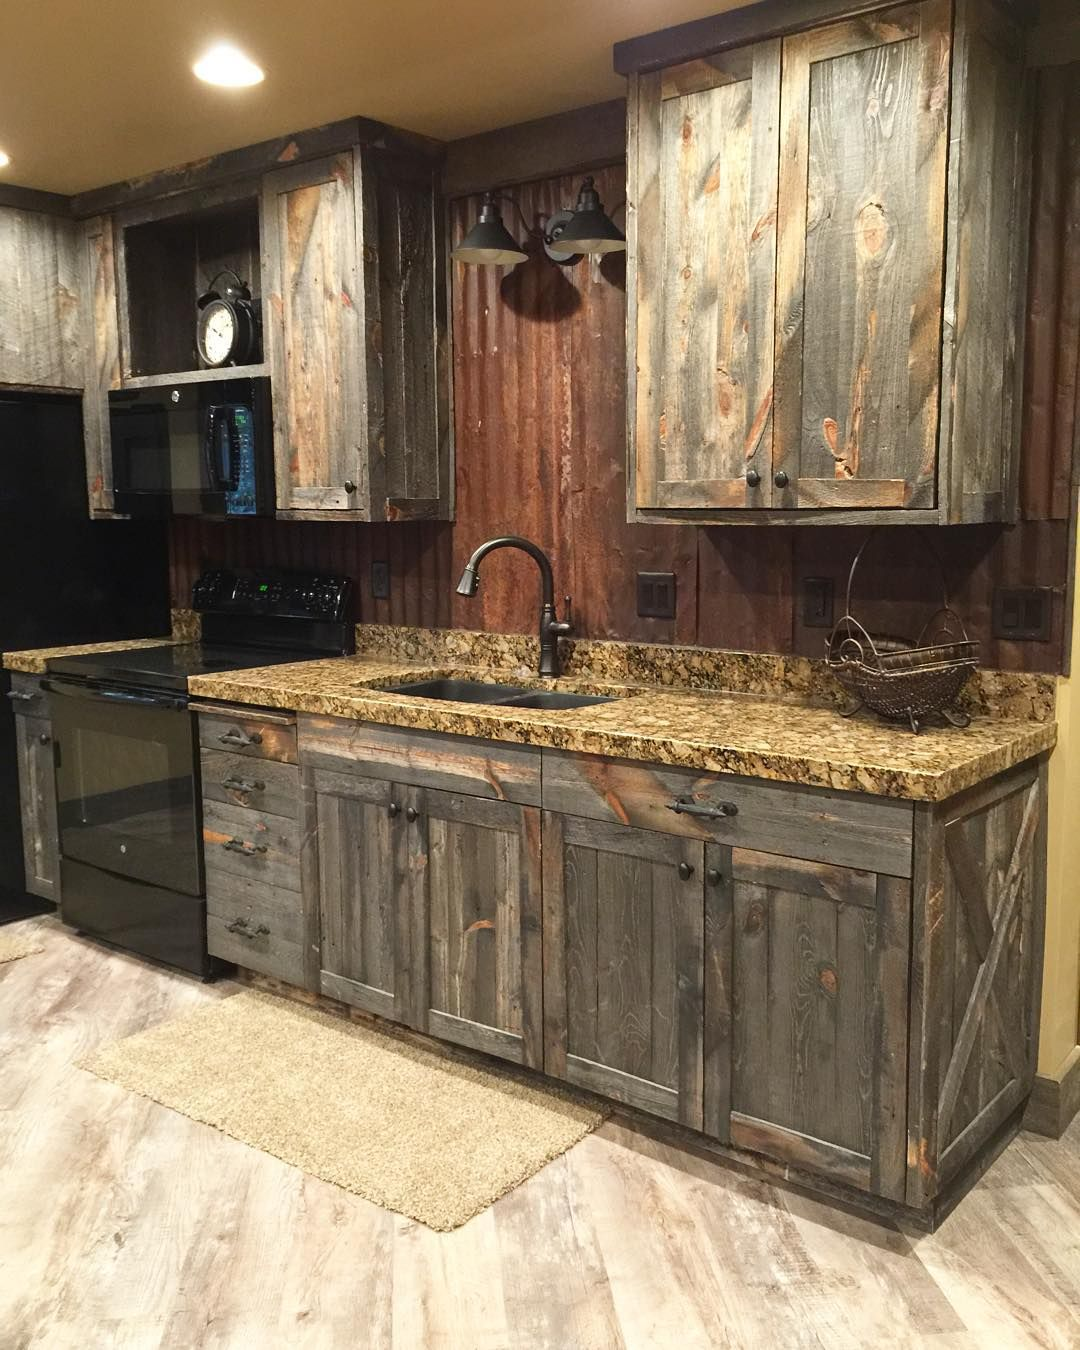 Rustic Kitchen Cabinets quotes House Designer kitchen